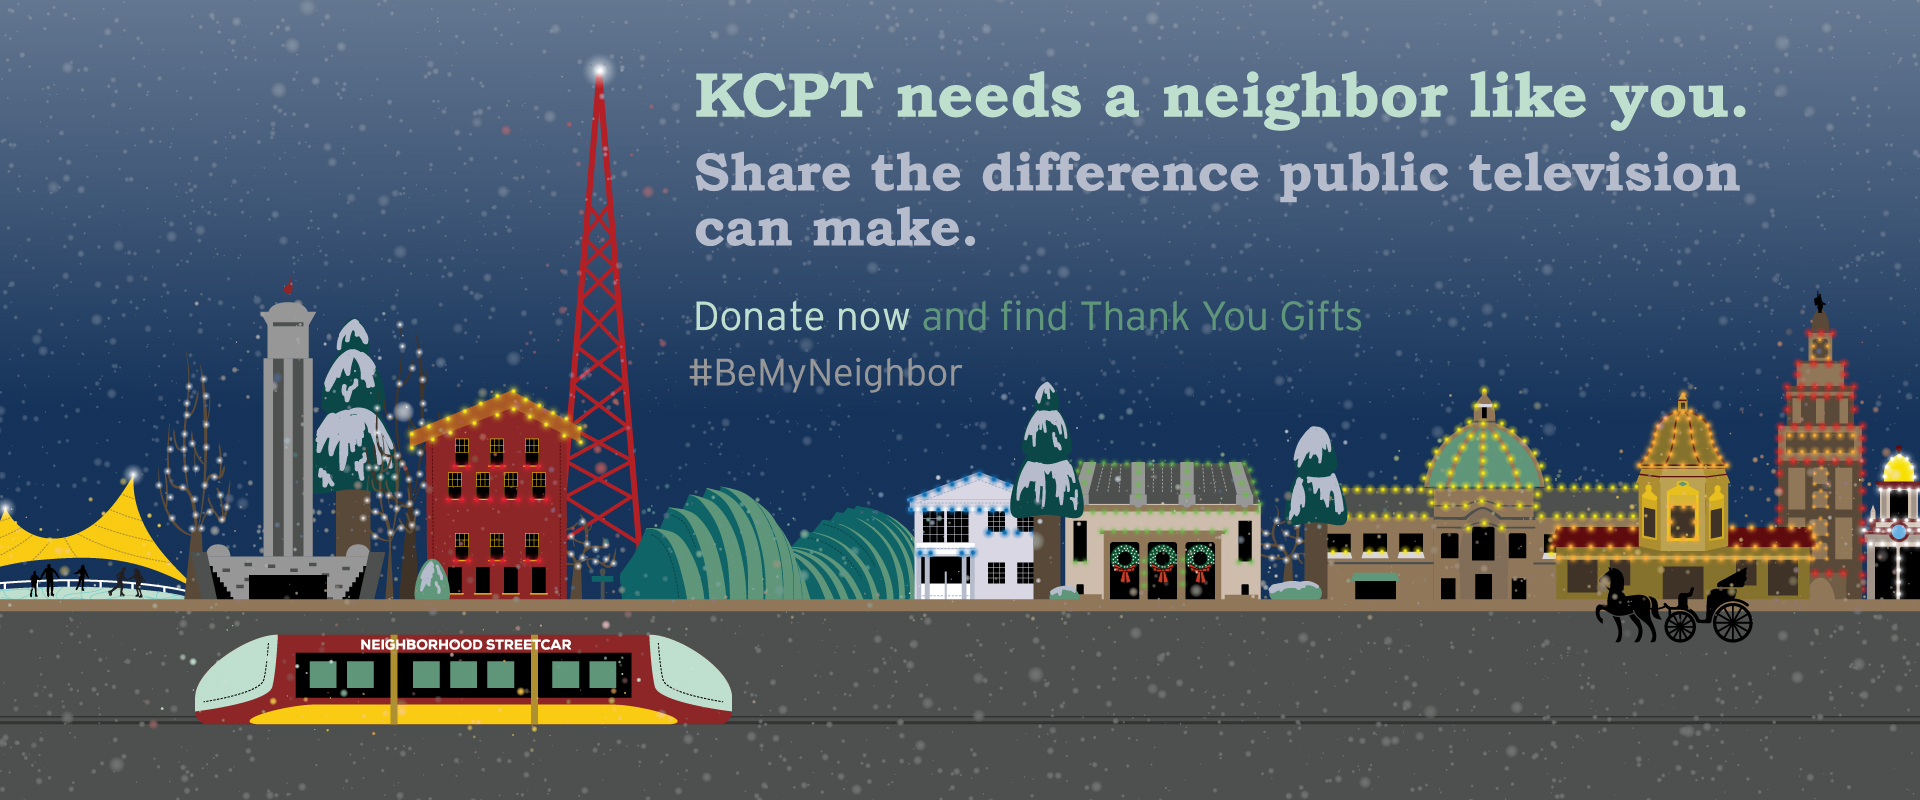 KCPT needs a neighbor like you. Share the difference public television can make. Donate now and find thank you gifts.